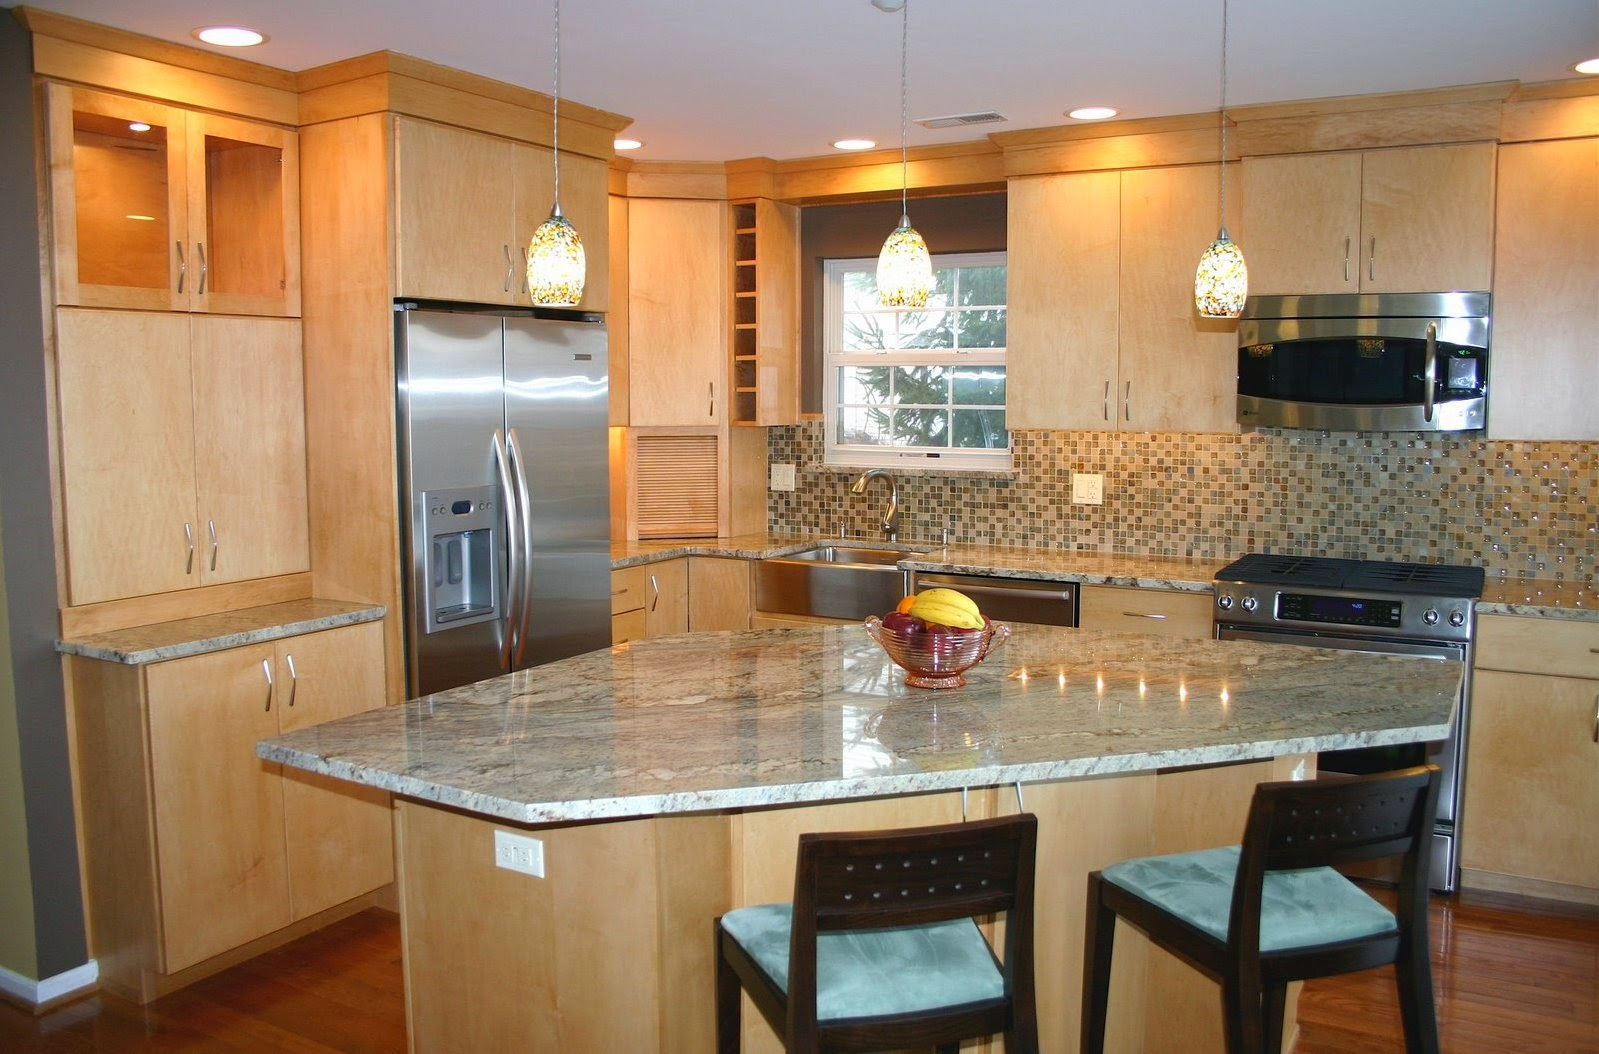 Kitchen Backsplash Ideas With Cream Cabinets kitchen tile backsplash ideas with cream cabinets